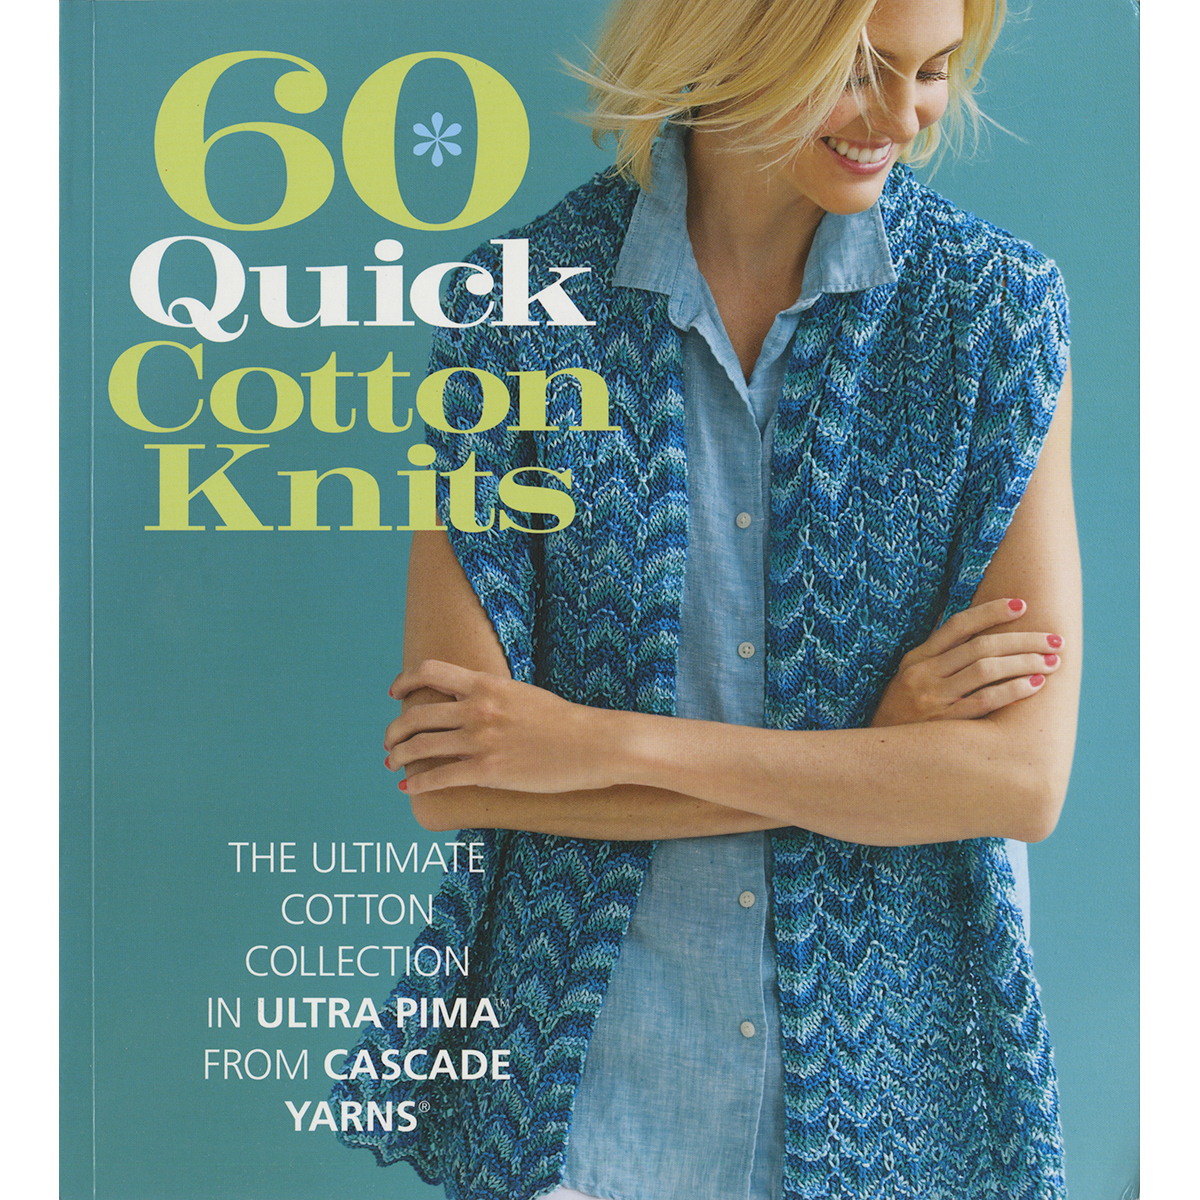 60 Quick Cotton Knits:  The ultimate cotton collection in Ultra Pima Book